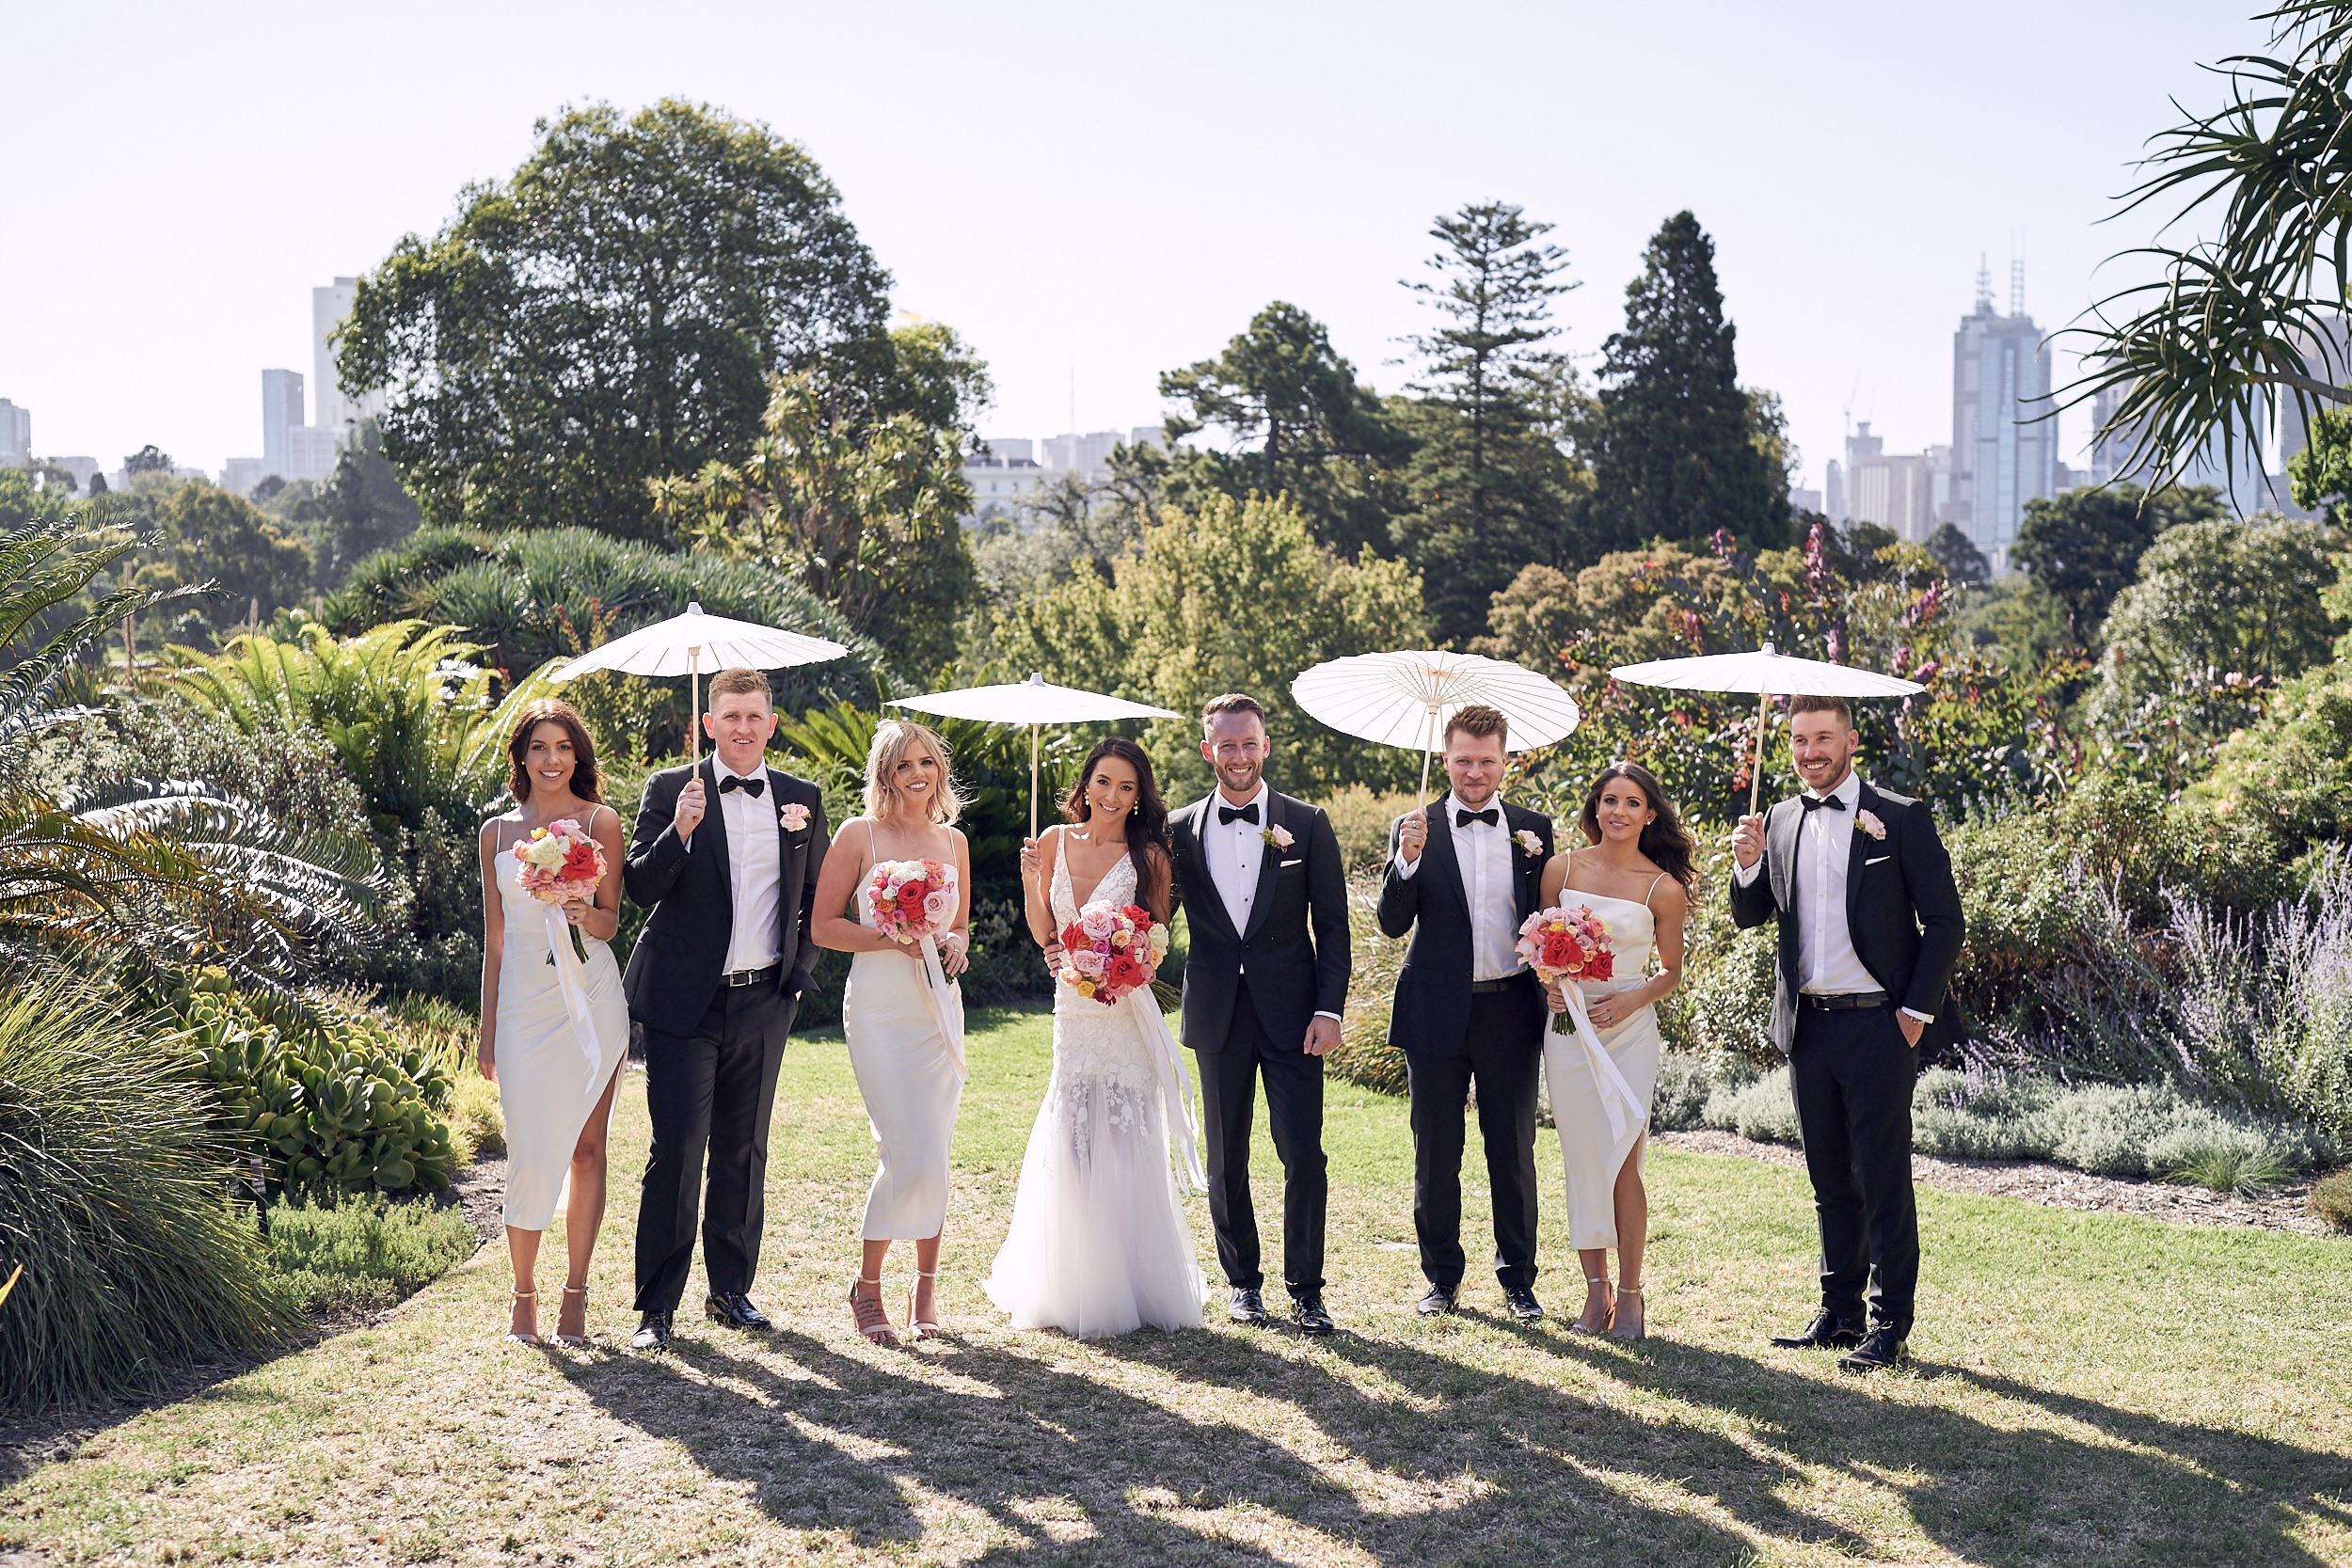 botanical garden wedding, bridal party. By lost in love photography